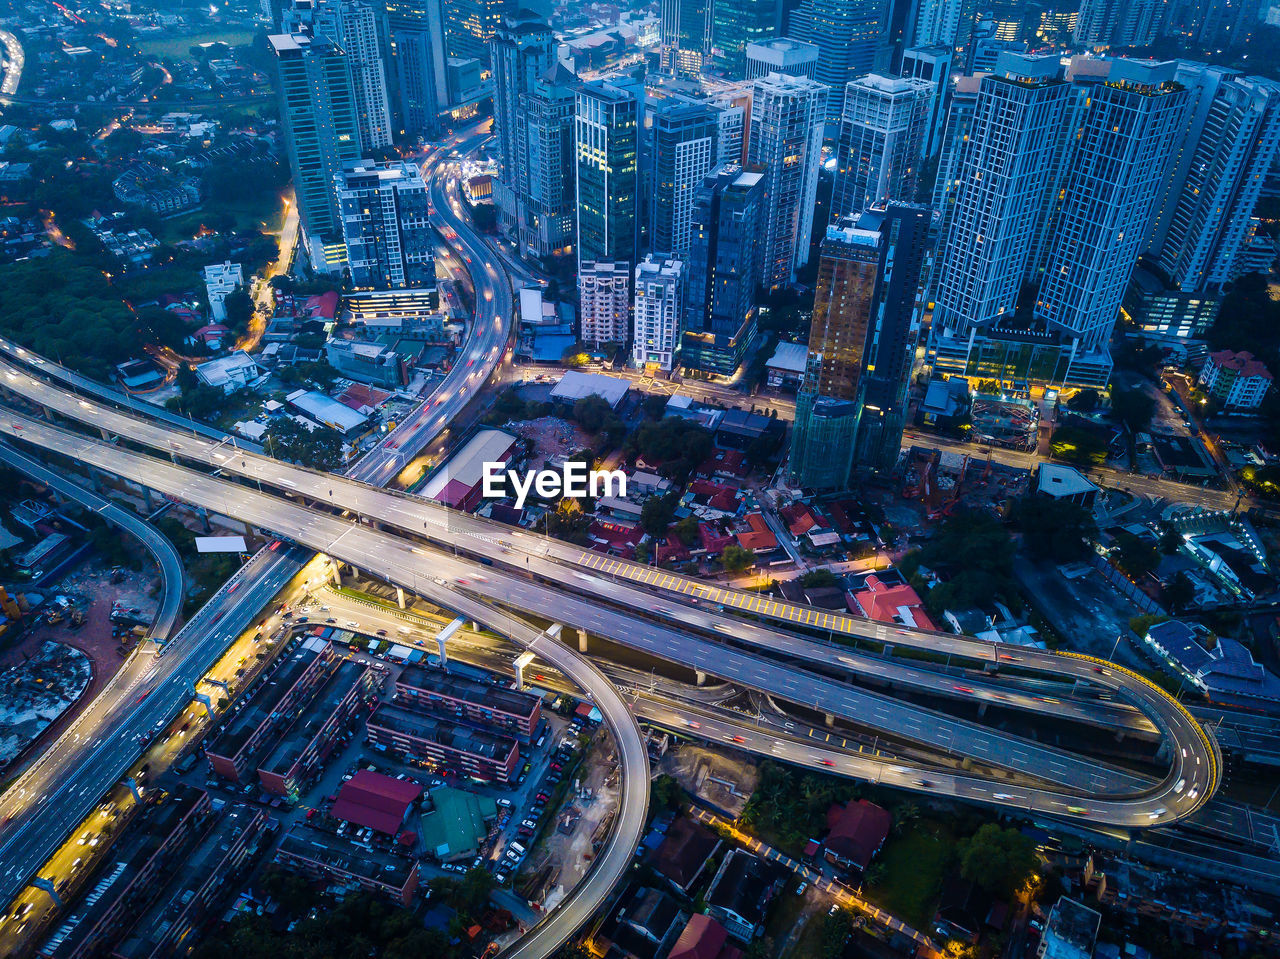 Aerial View Of Illuminated Highway Amidst Buildings At Night